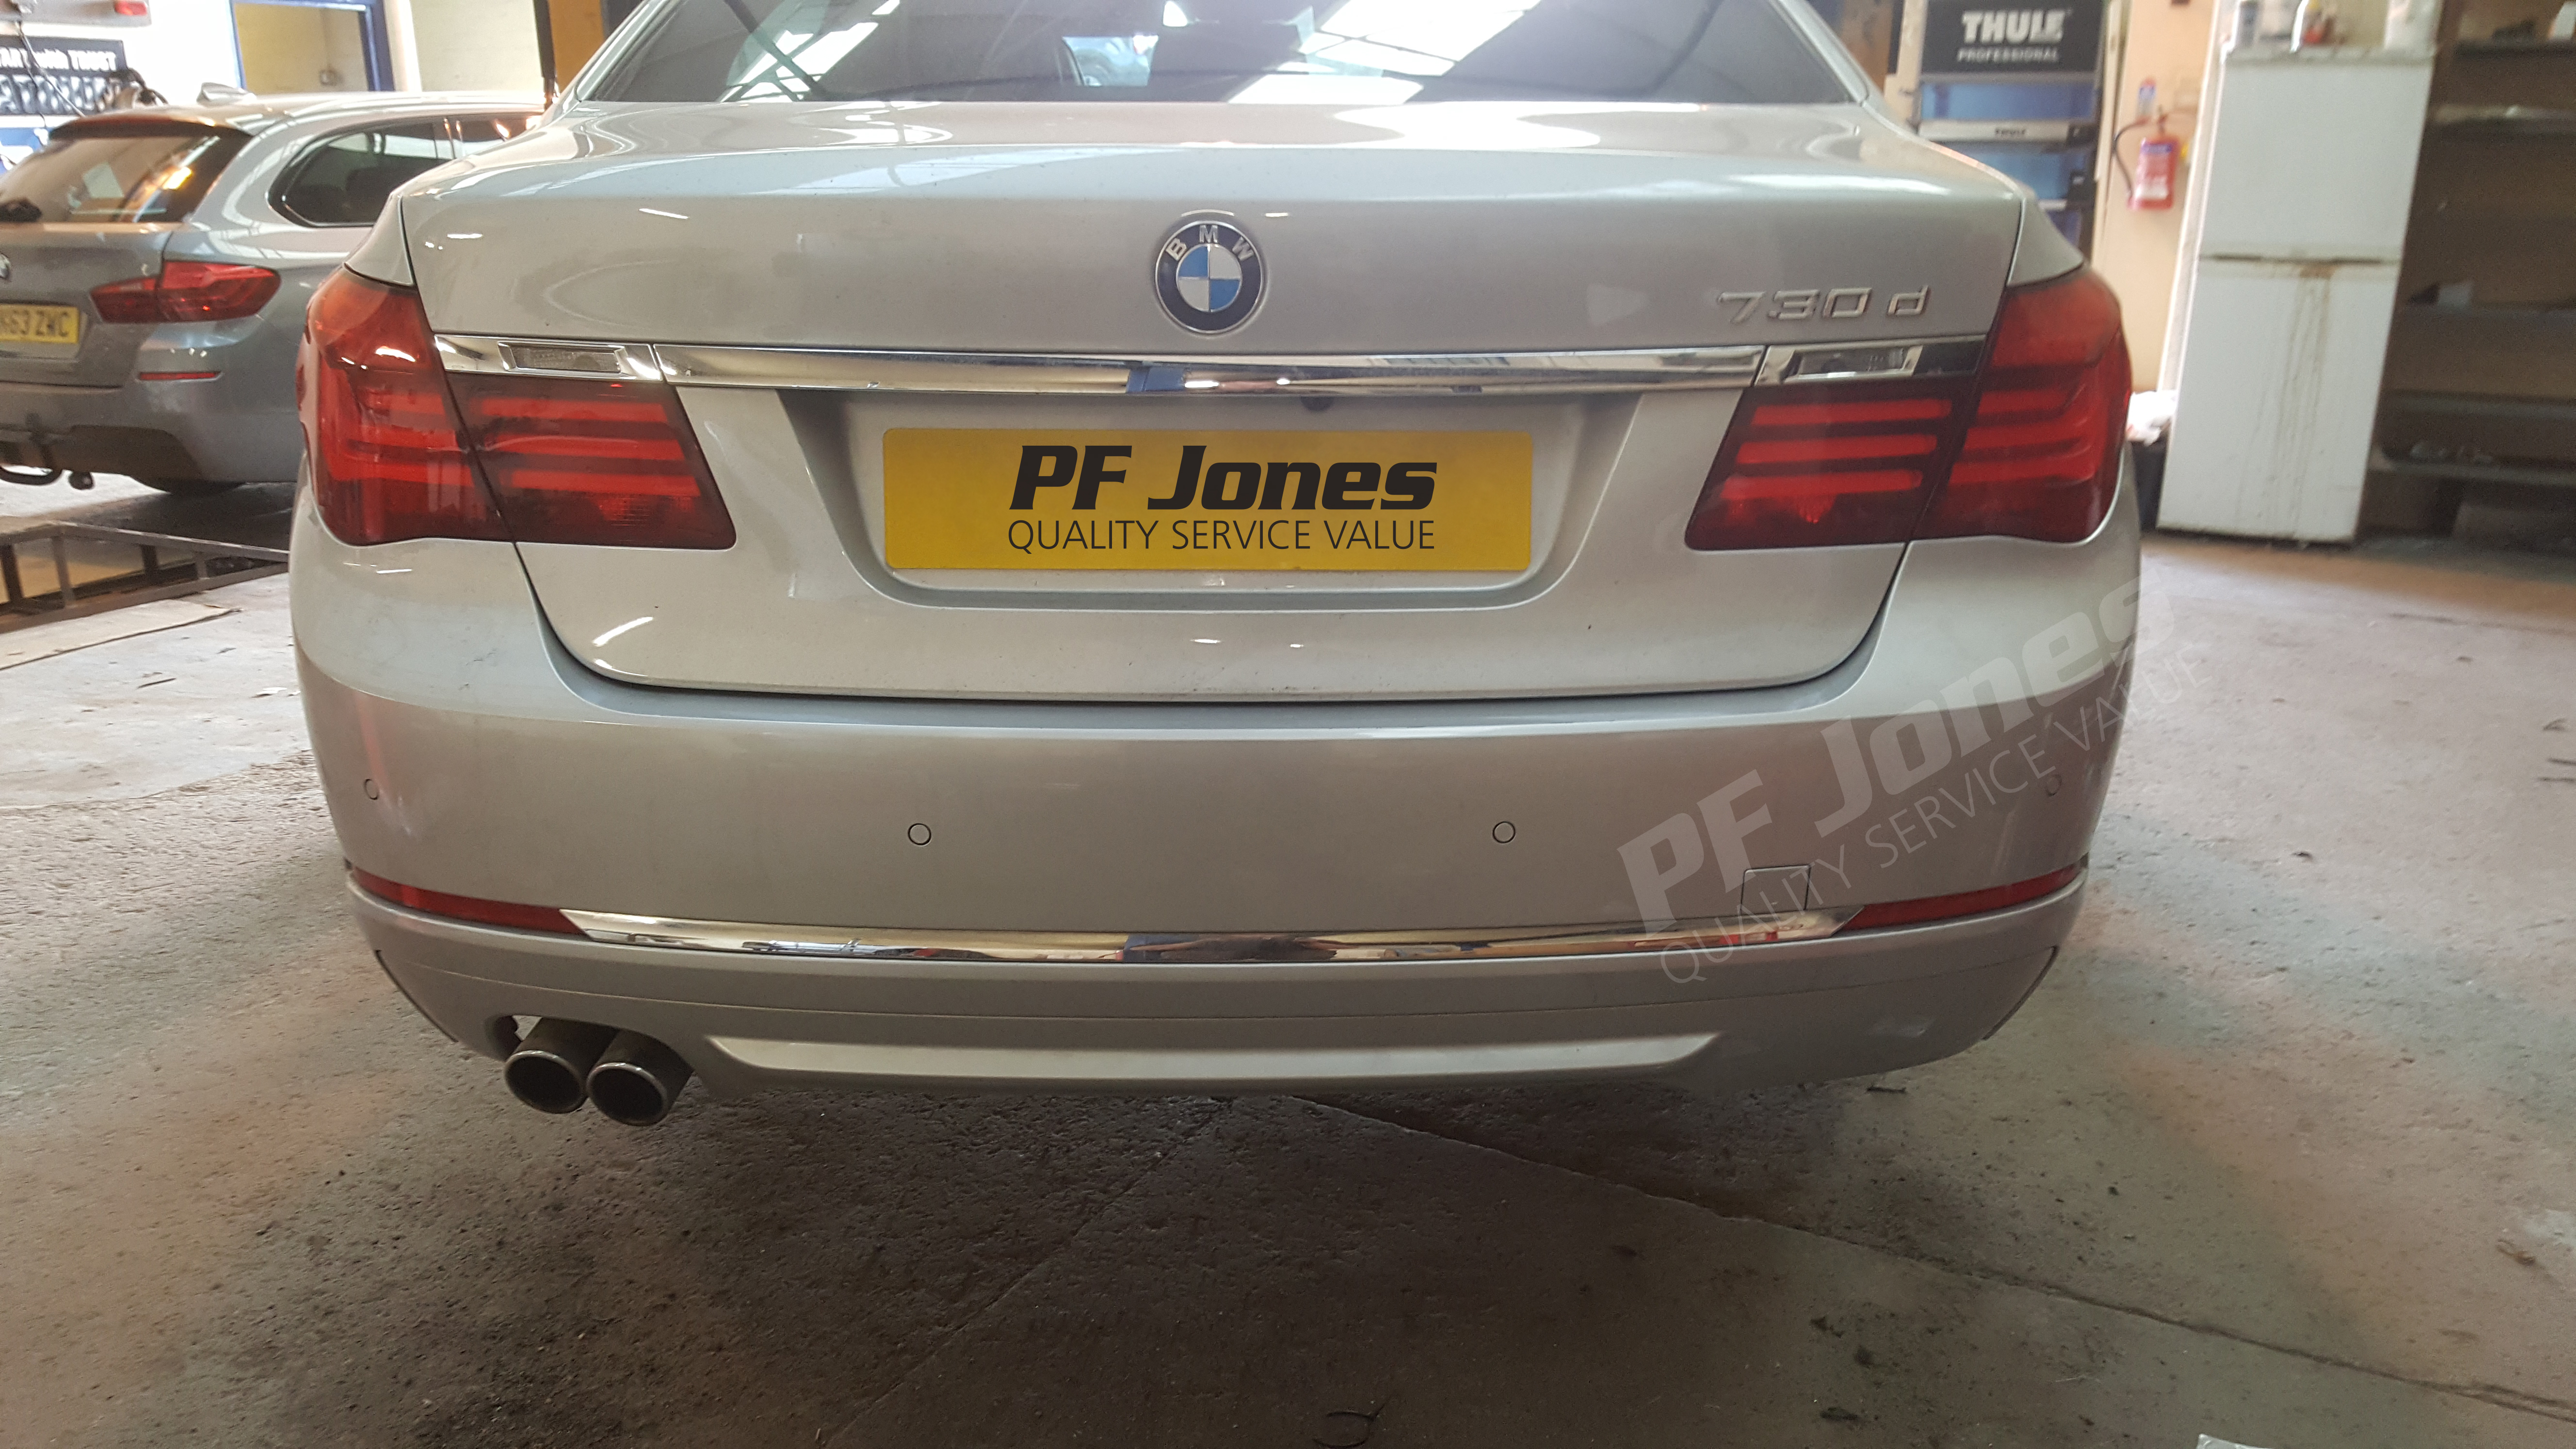 Bmw 3 Series Tow Bar Wiring Diagram Great Design Of Brake Buddy Excellent E46 Towbar Photos Best Central Lock